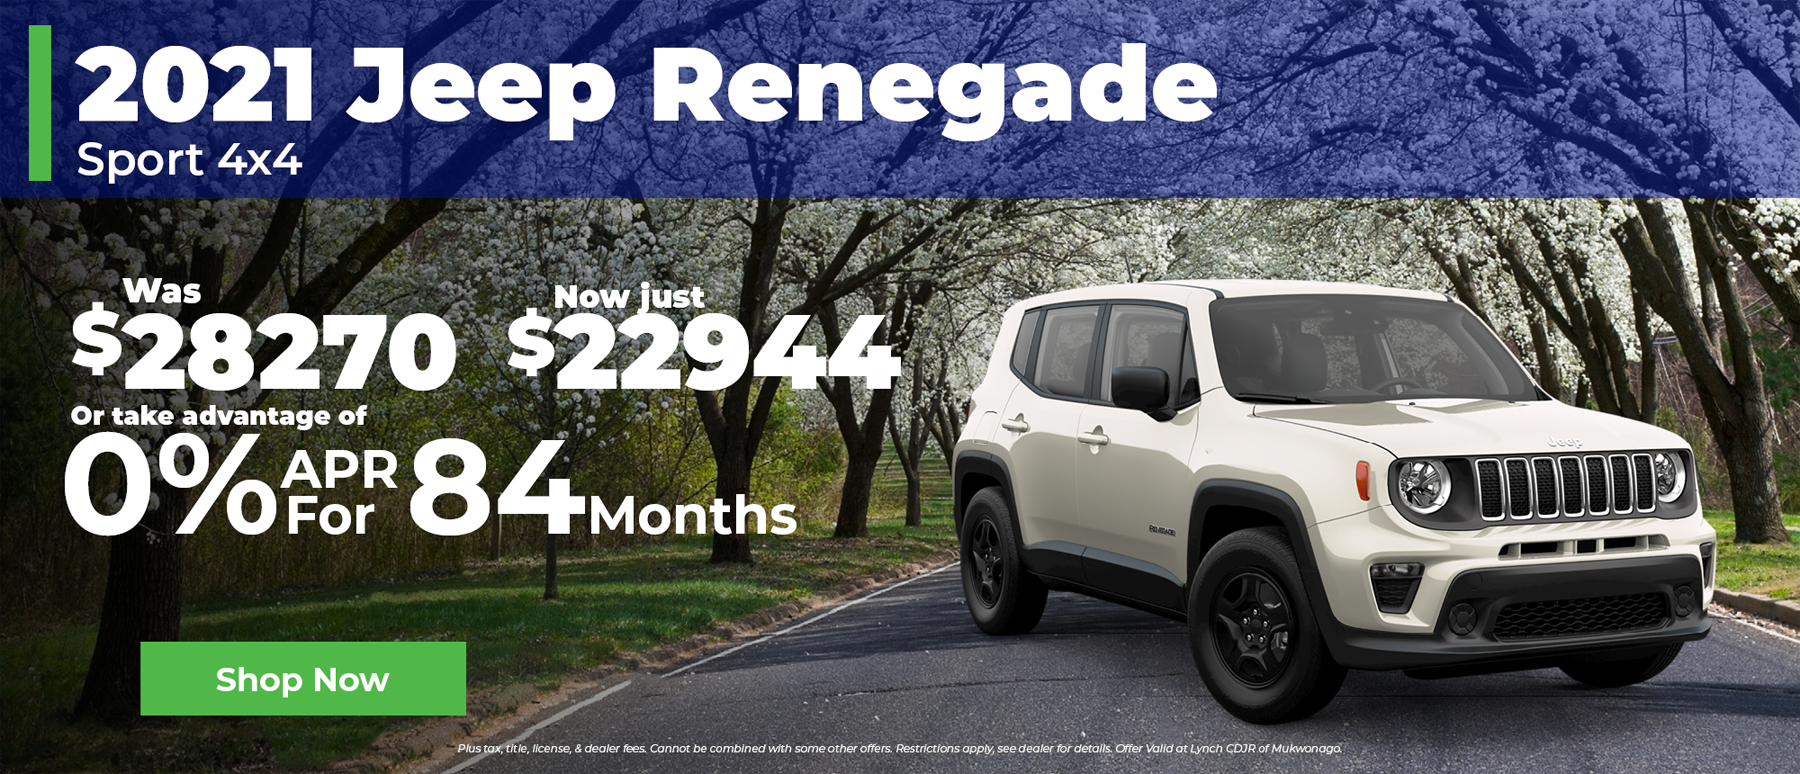 0% Financing for 84 Months on 2021 Jeep Renegade in Mukwonago WI